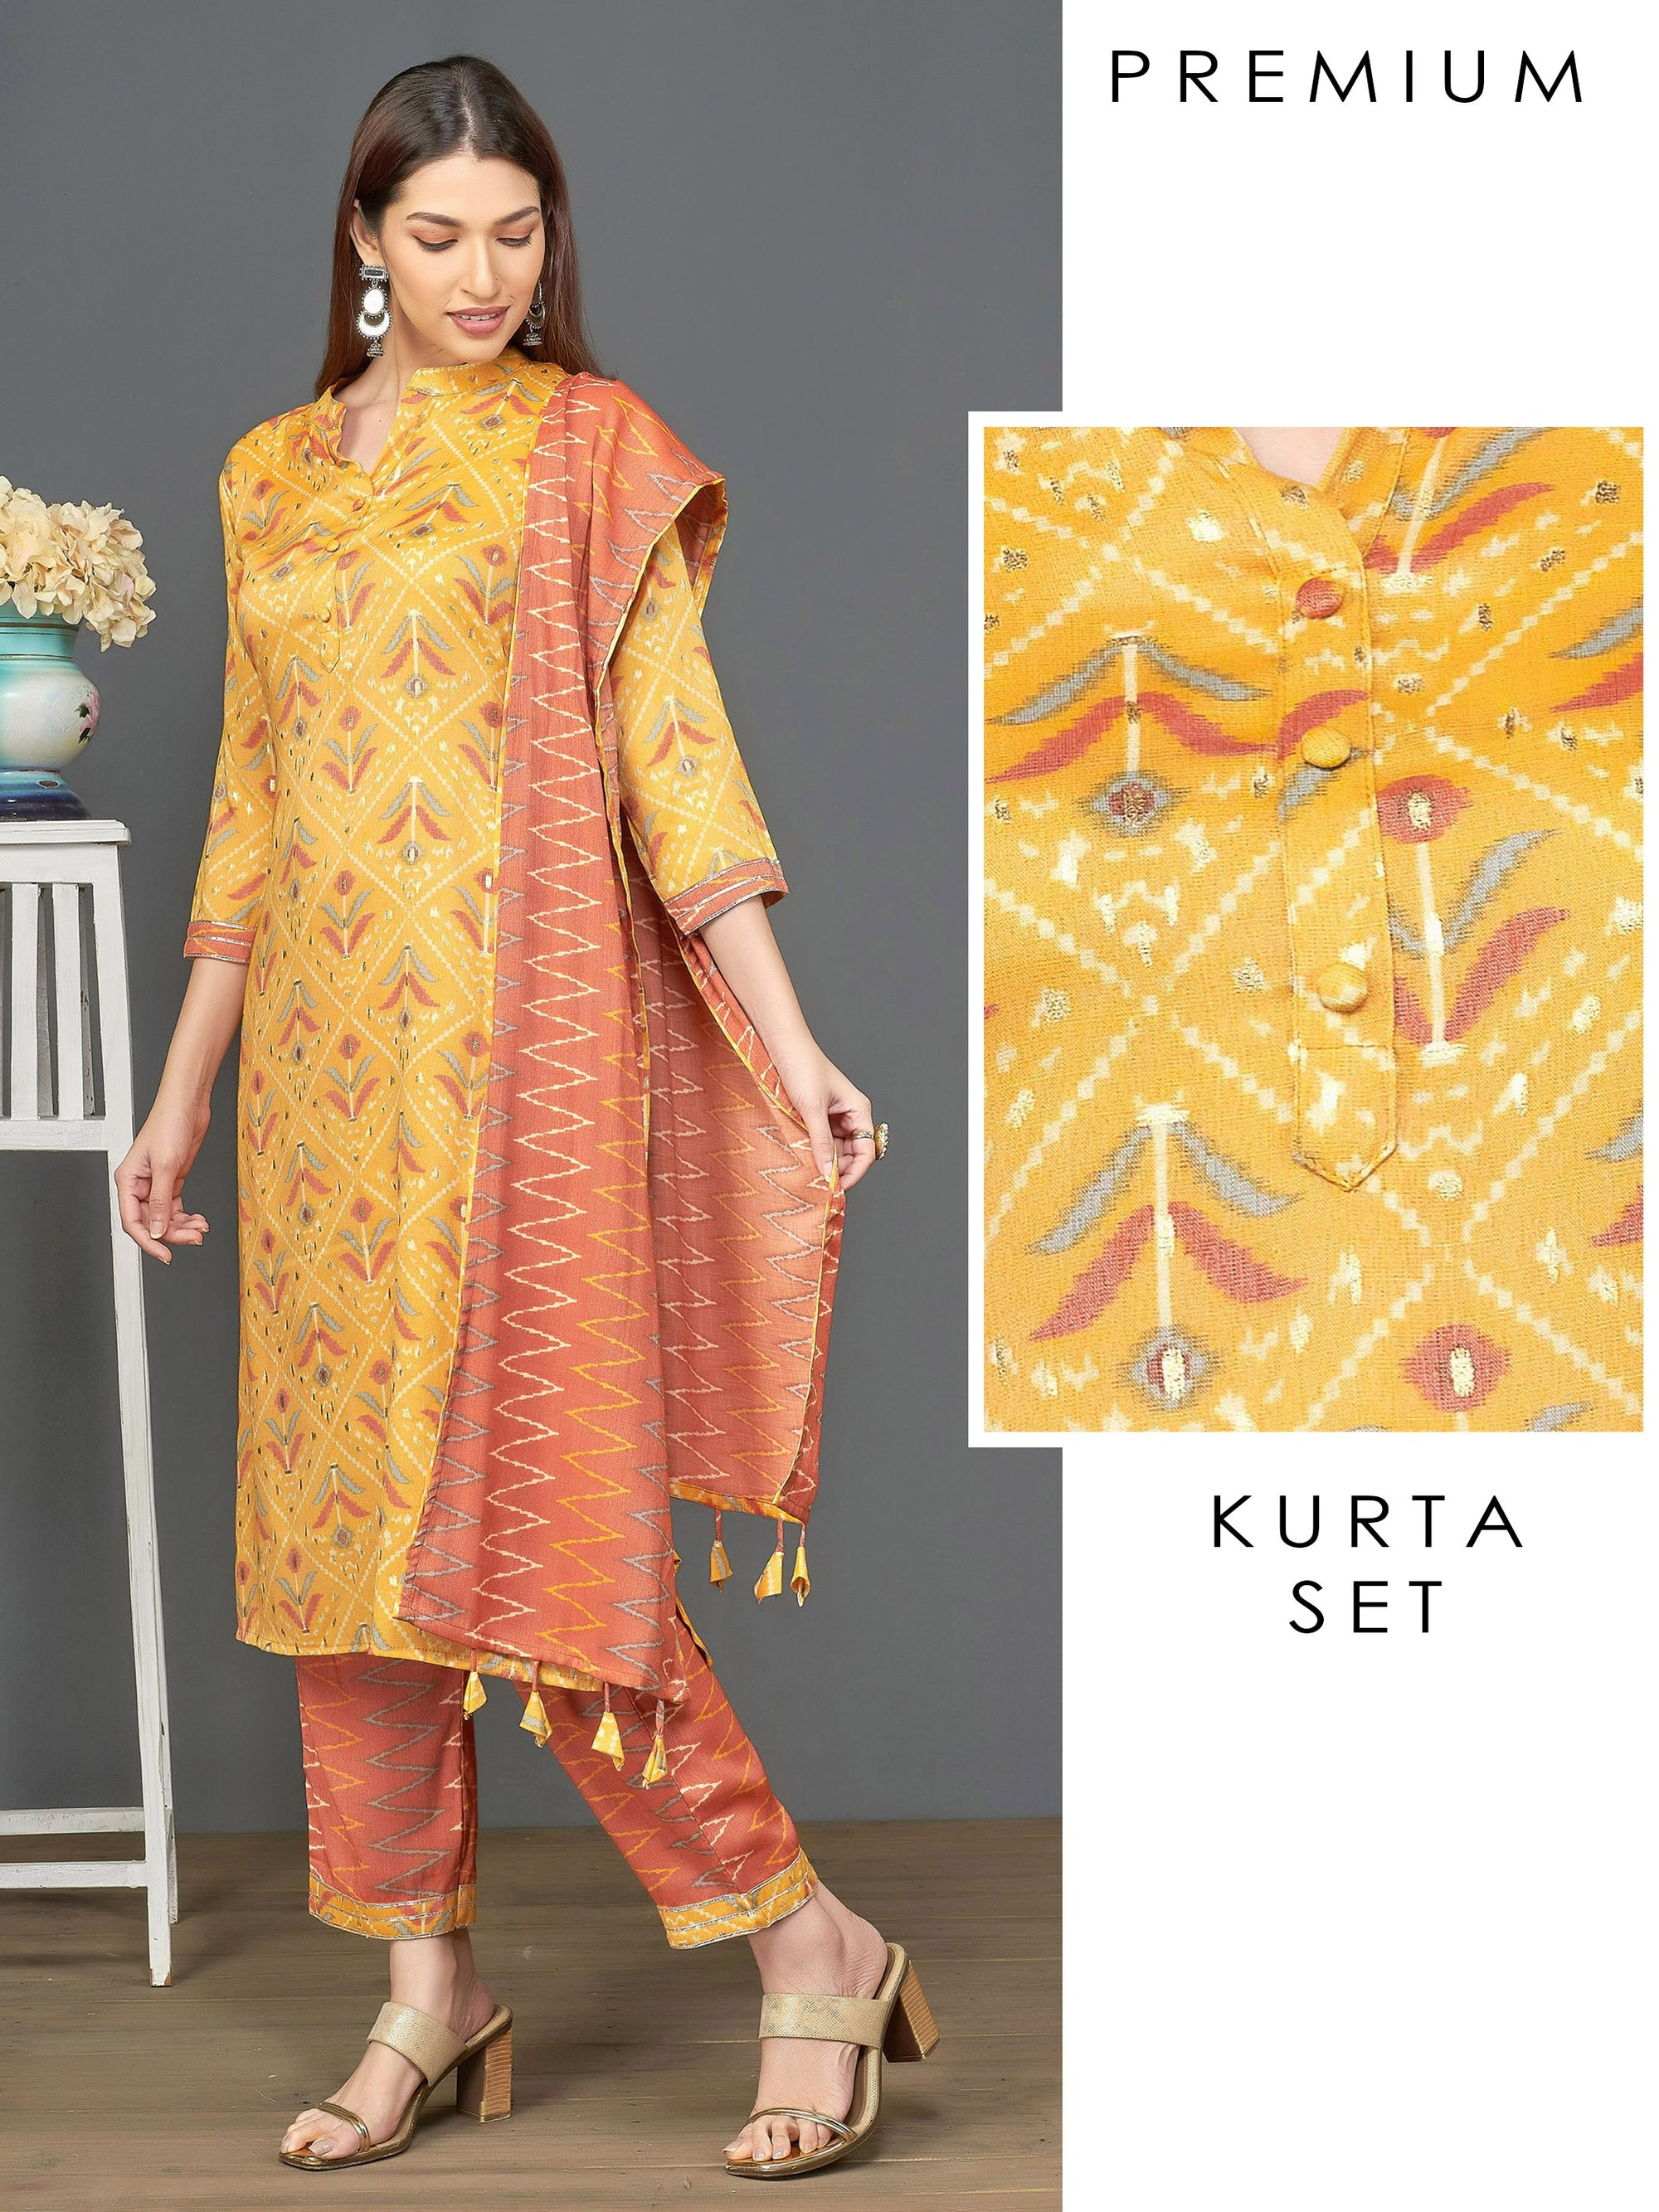 Abstract Printed Kurti & Chevron Printed Pant with Dupatta – Yellow